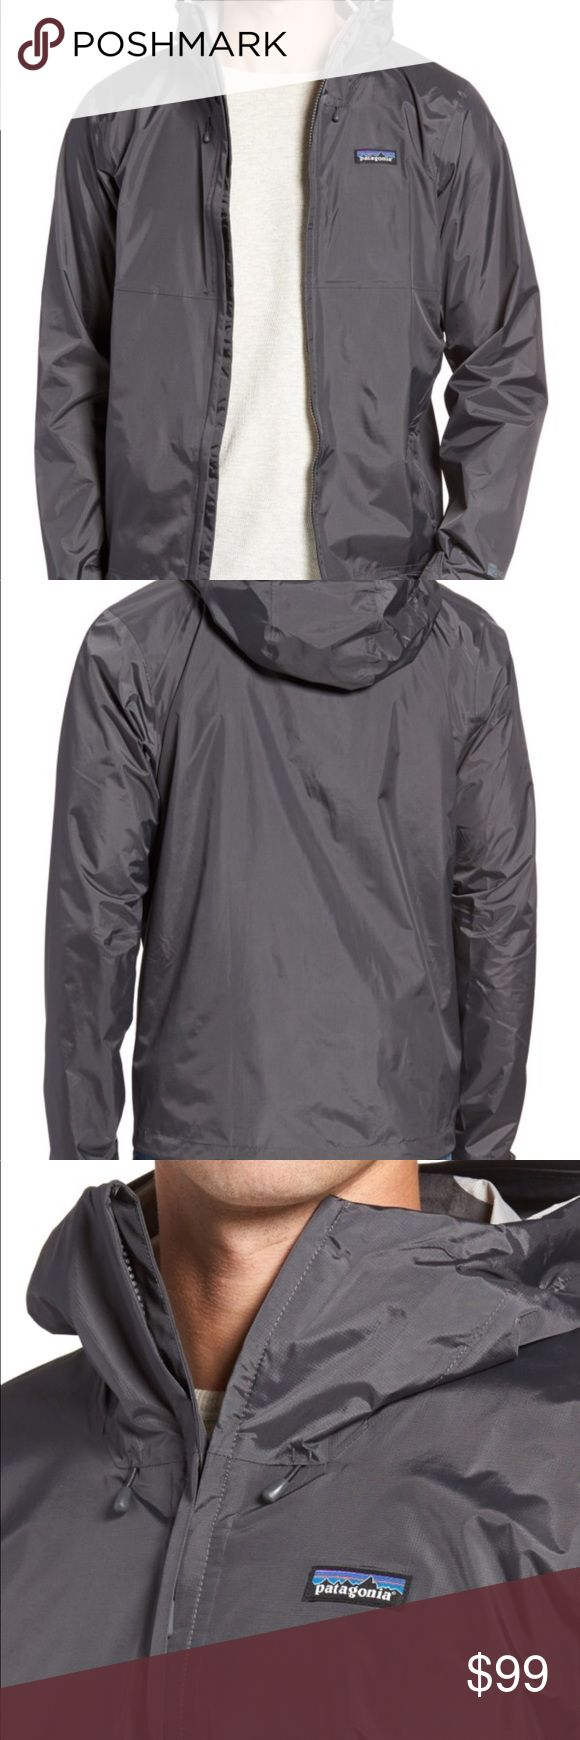 Patagonia Torrentshell Packable Rain jacket mens L Brand new never worn with partial price tag attached mens sz Large color is forge grey duplicate comes from a pet free smoke free home NO TRADES Patagonia Jackets & Coats Raincoats